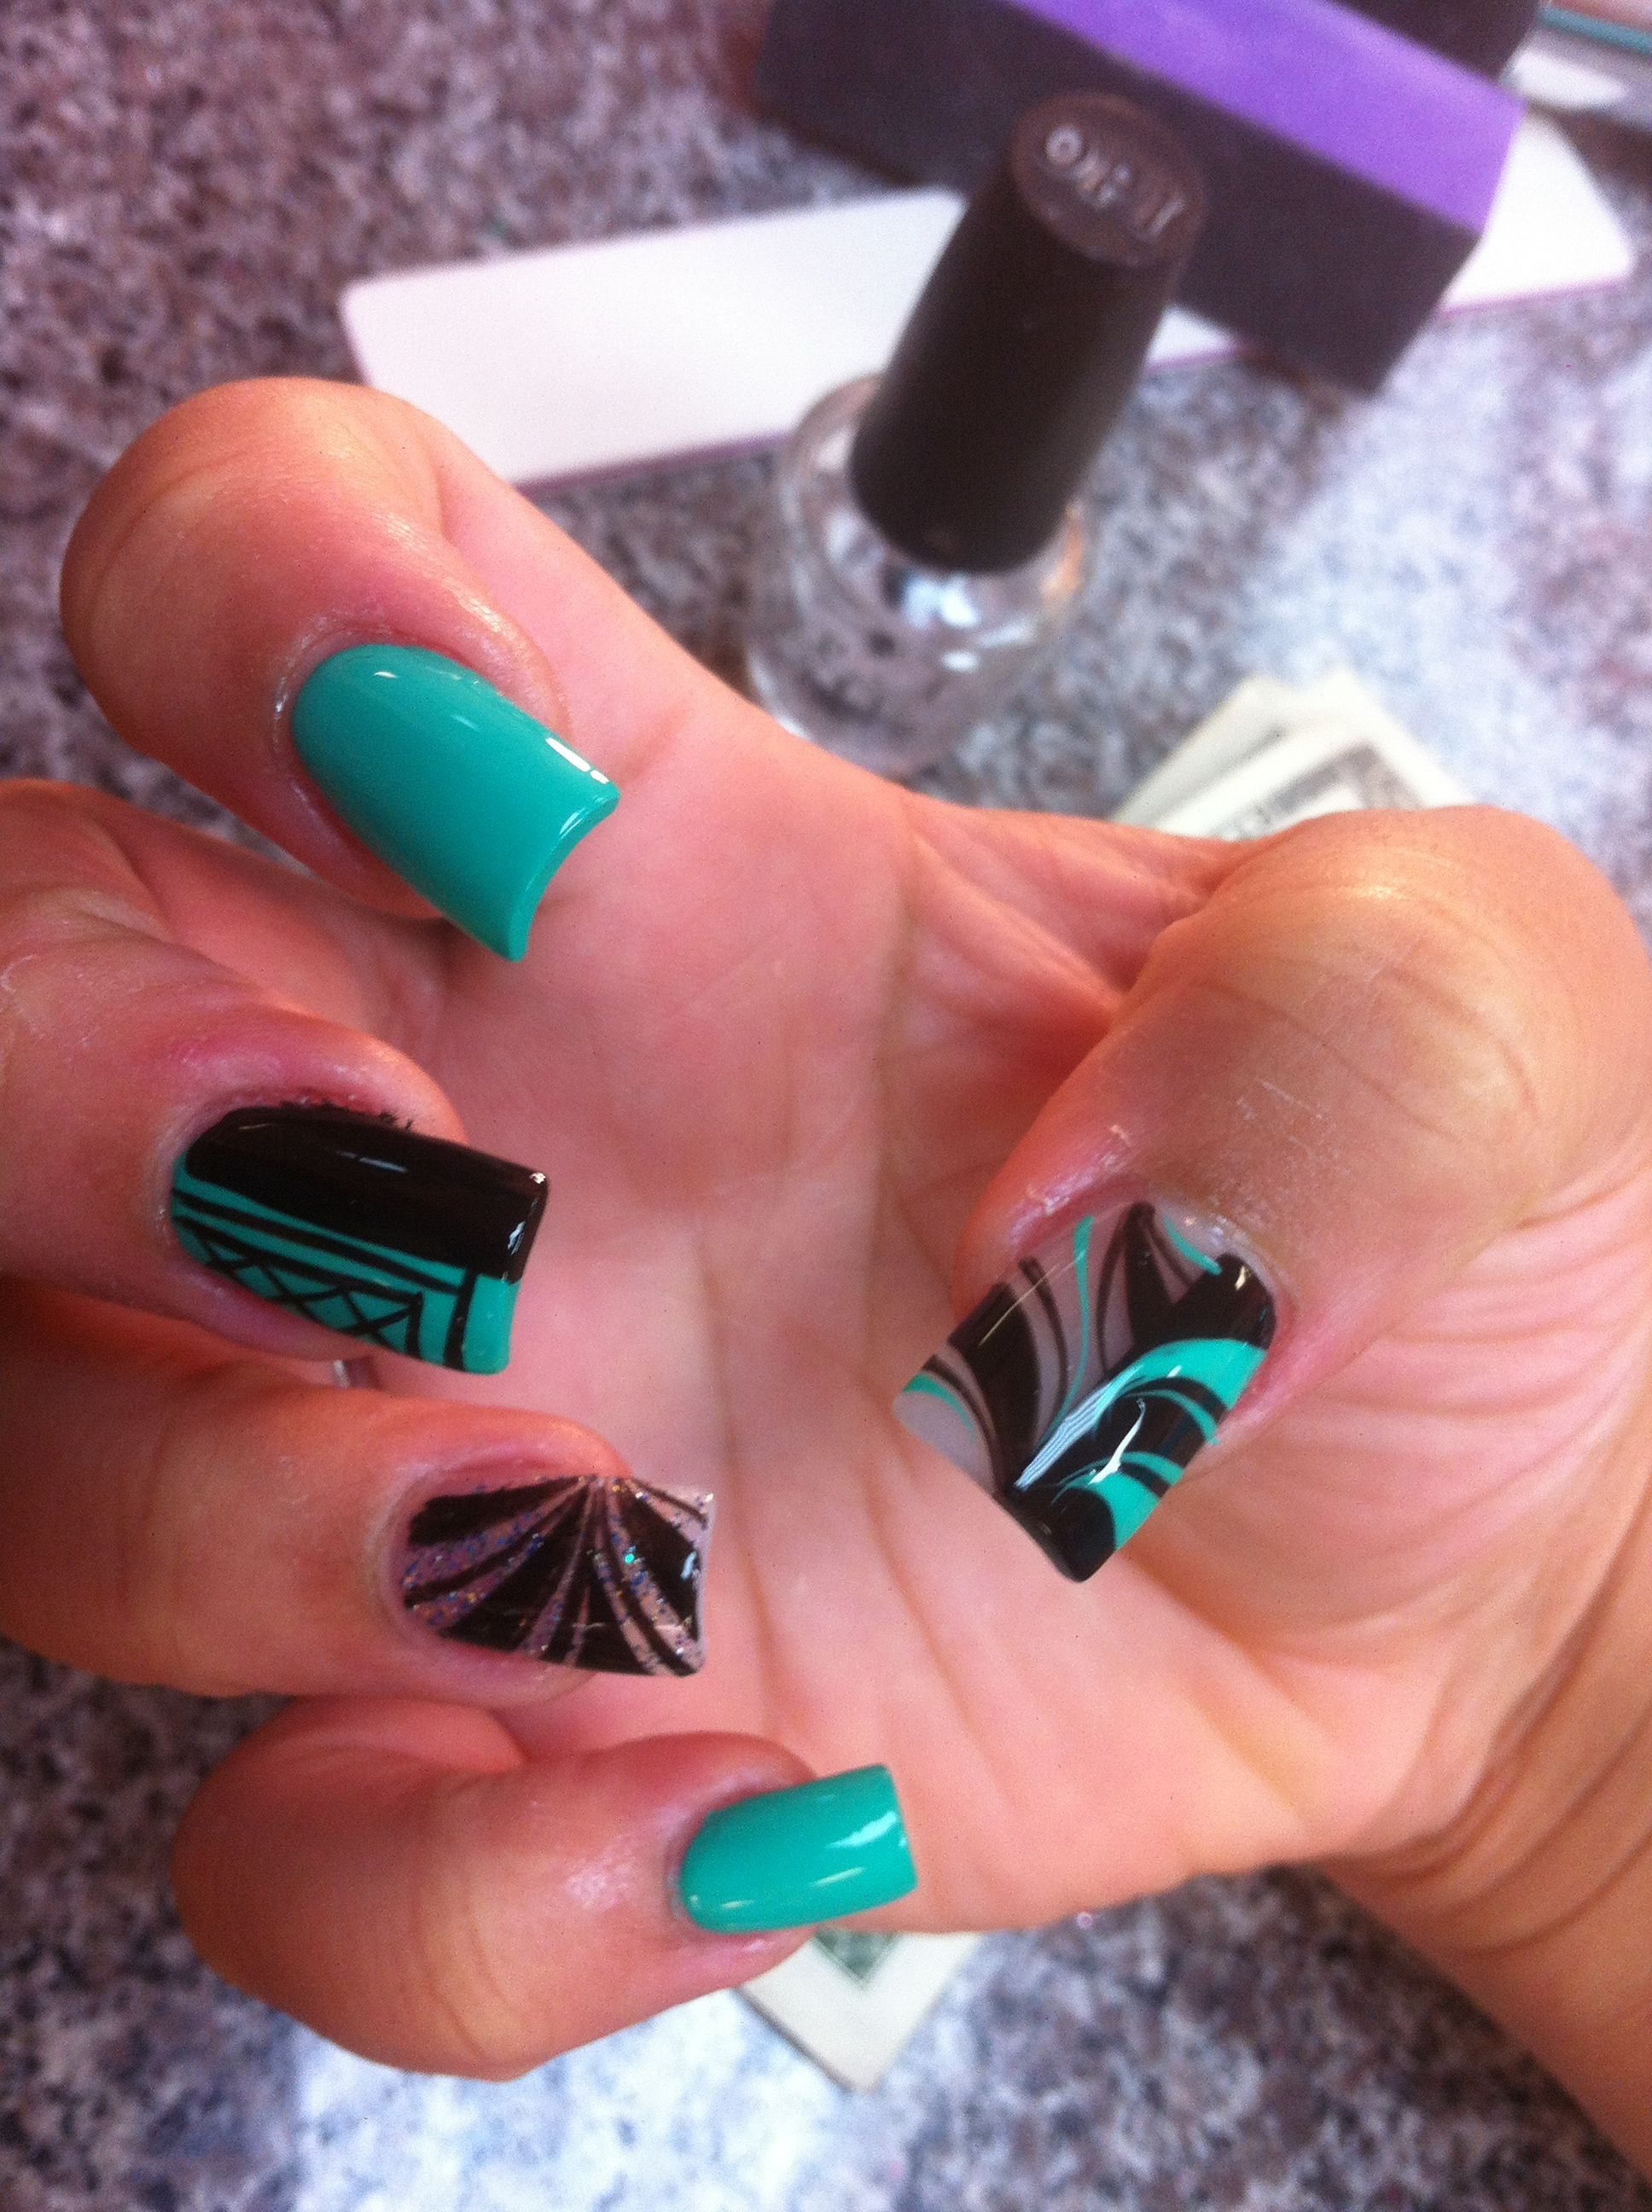 Fine touch nails 264 mains street Hackensack NJ 07601 201.883.0623 ...